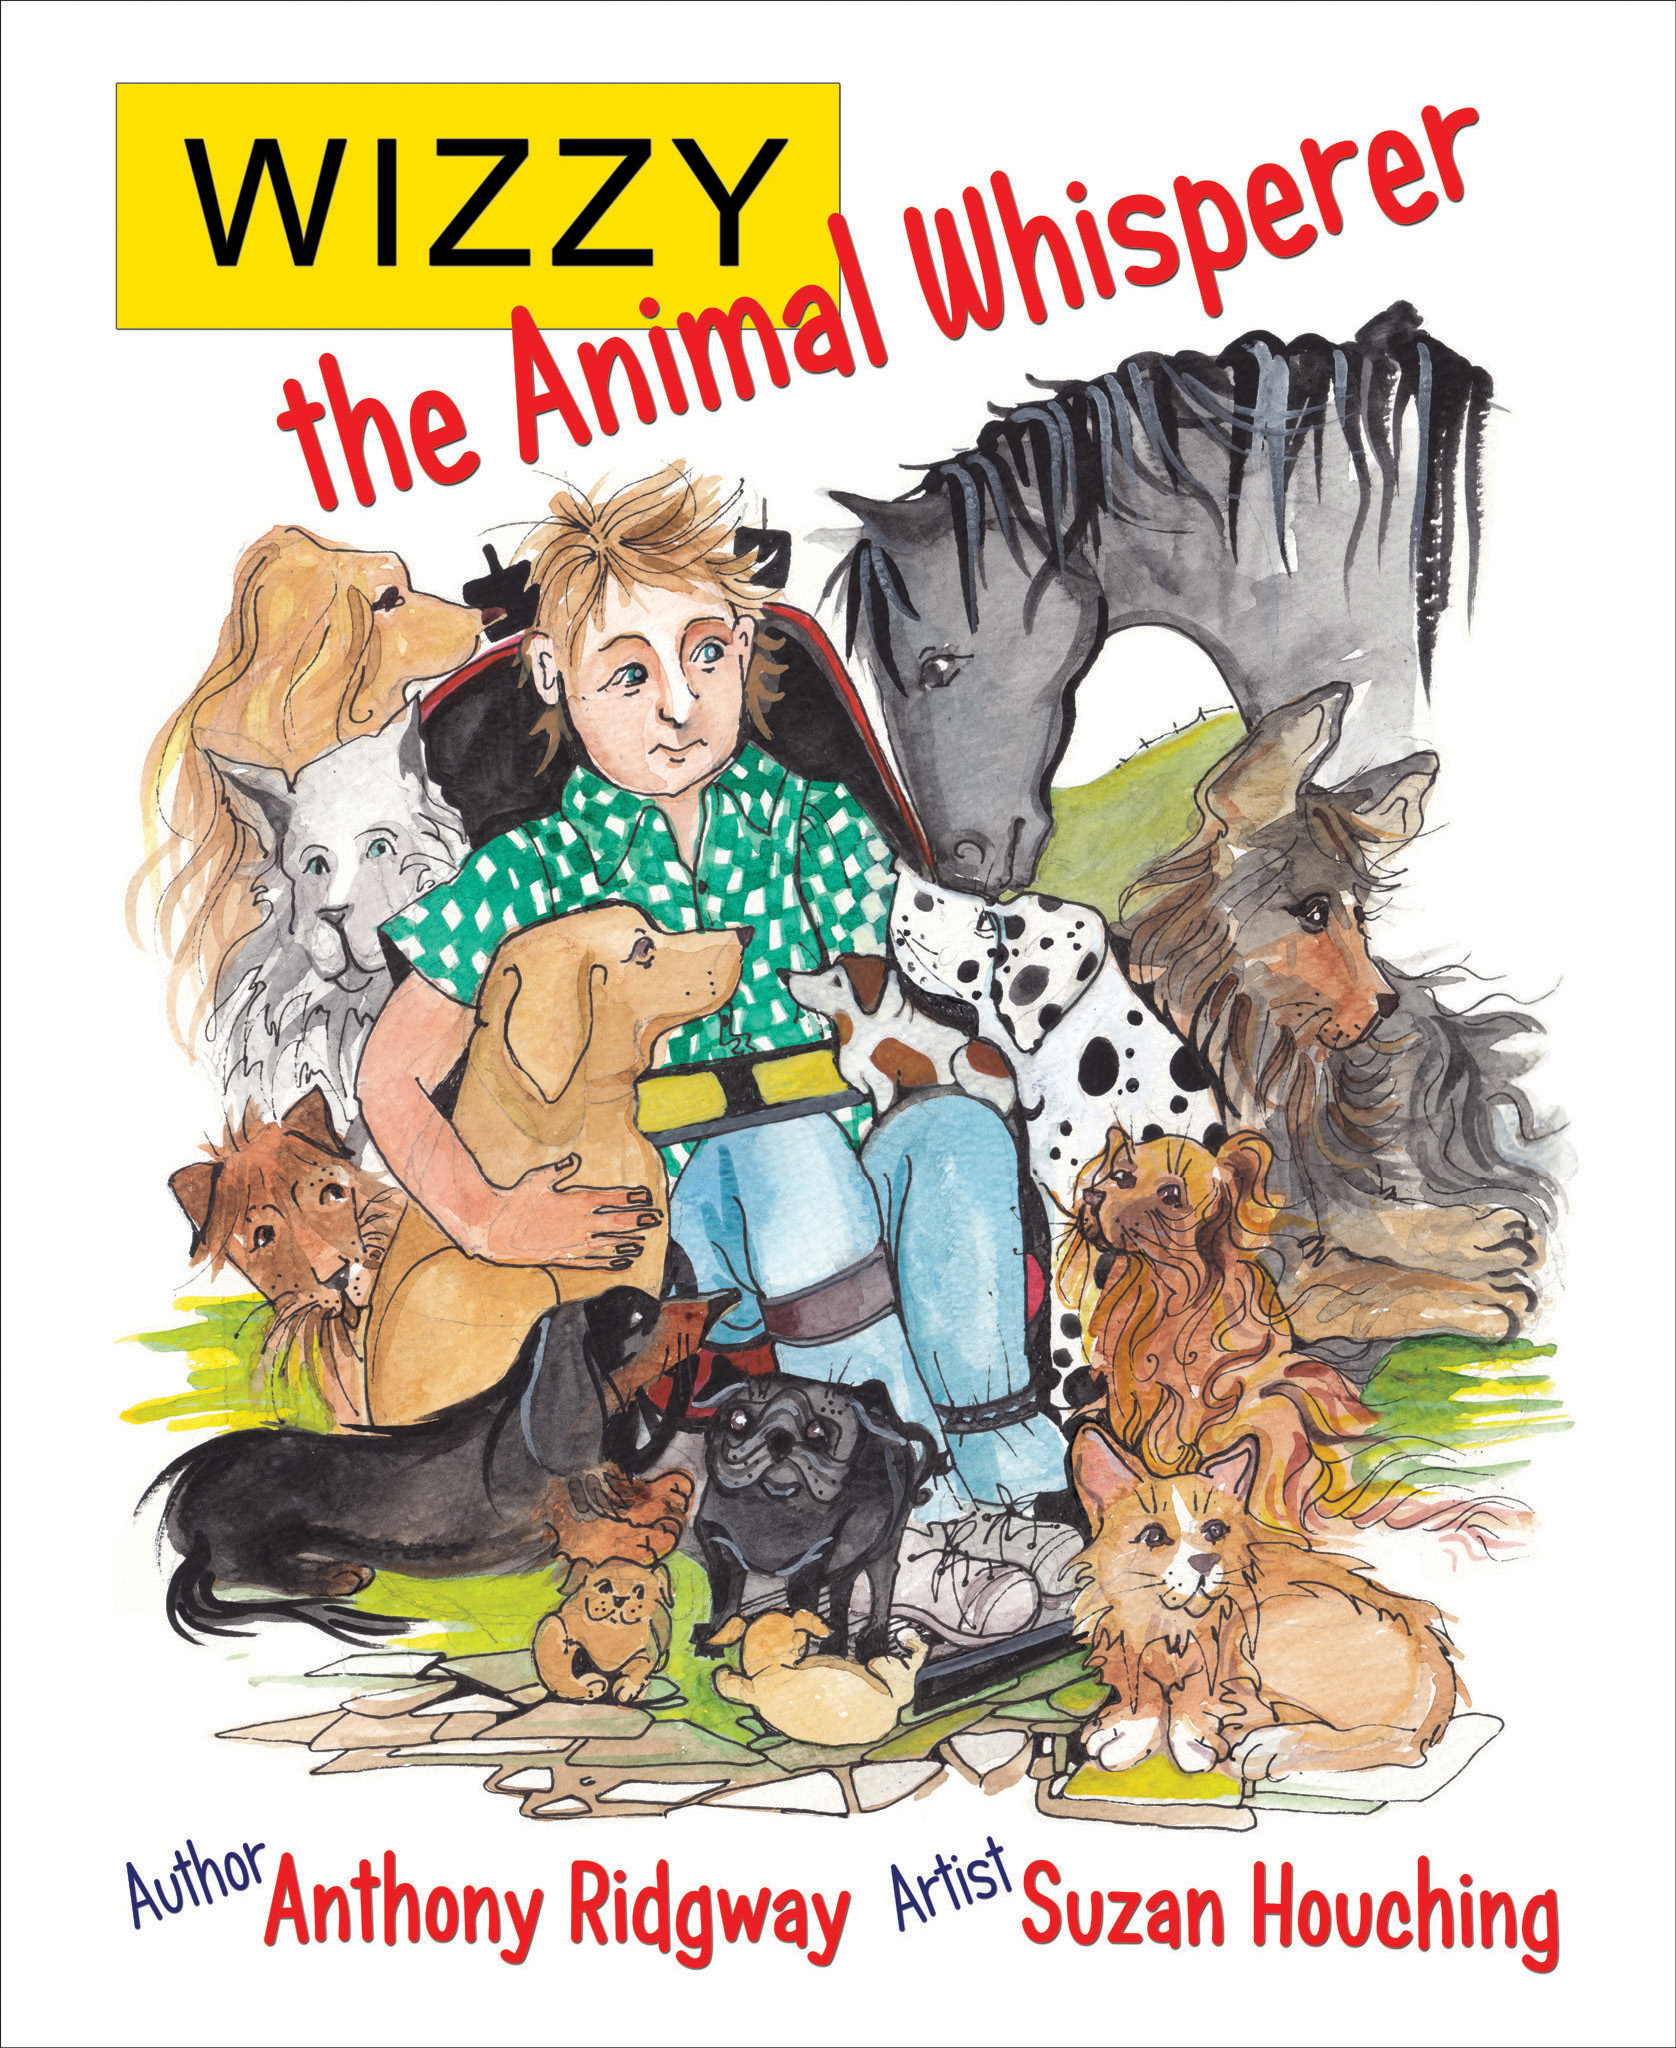 Front cover of Wizzy the Animal Whisperer book